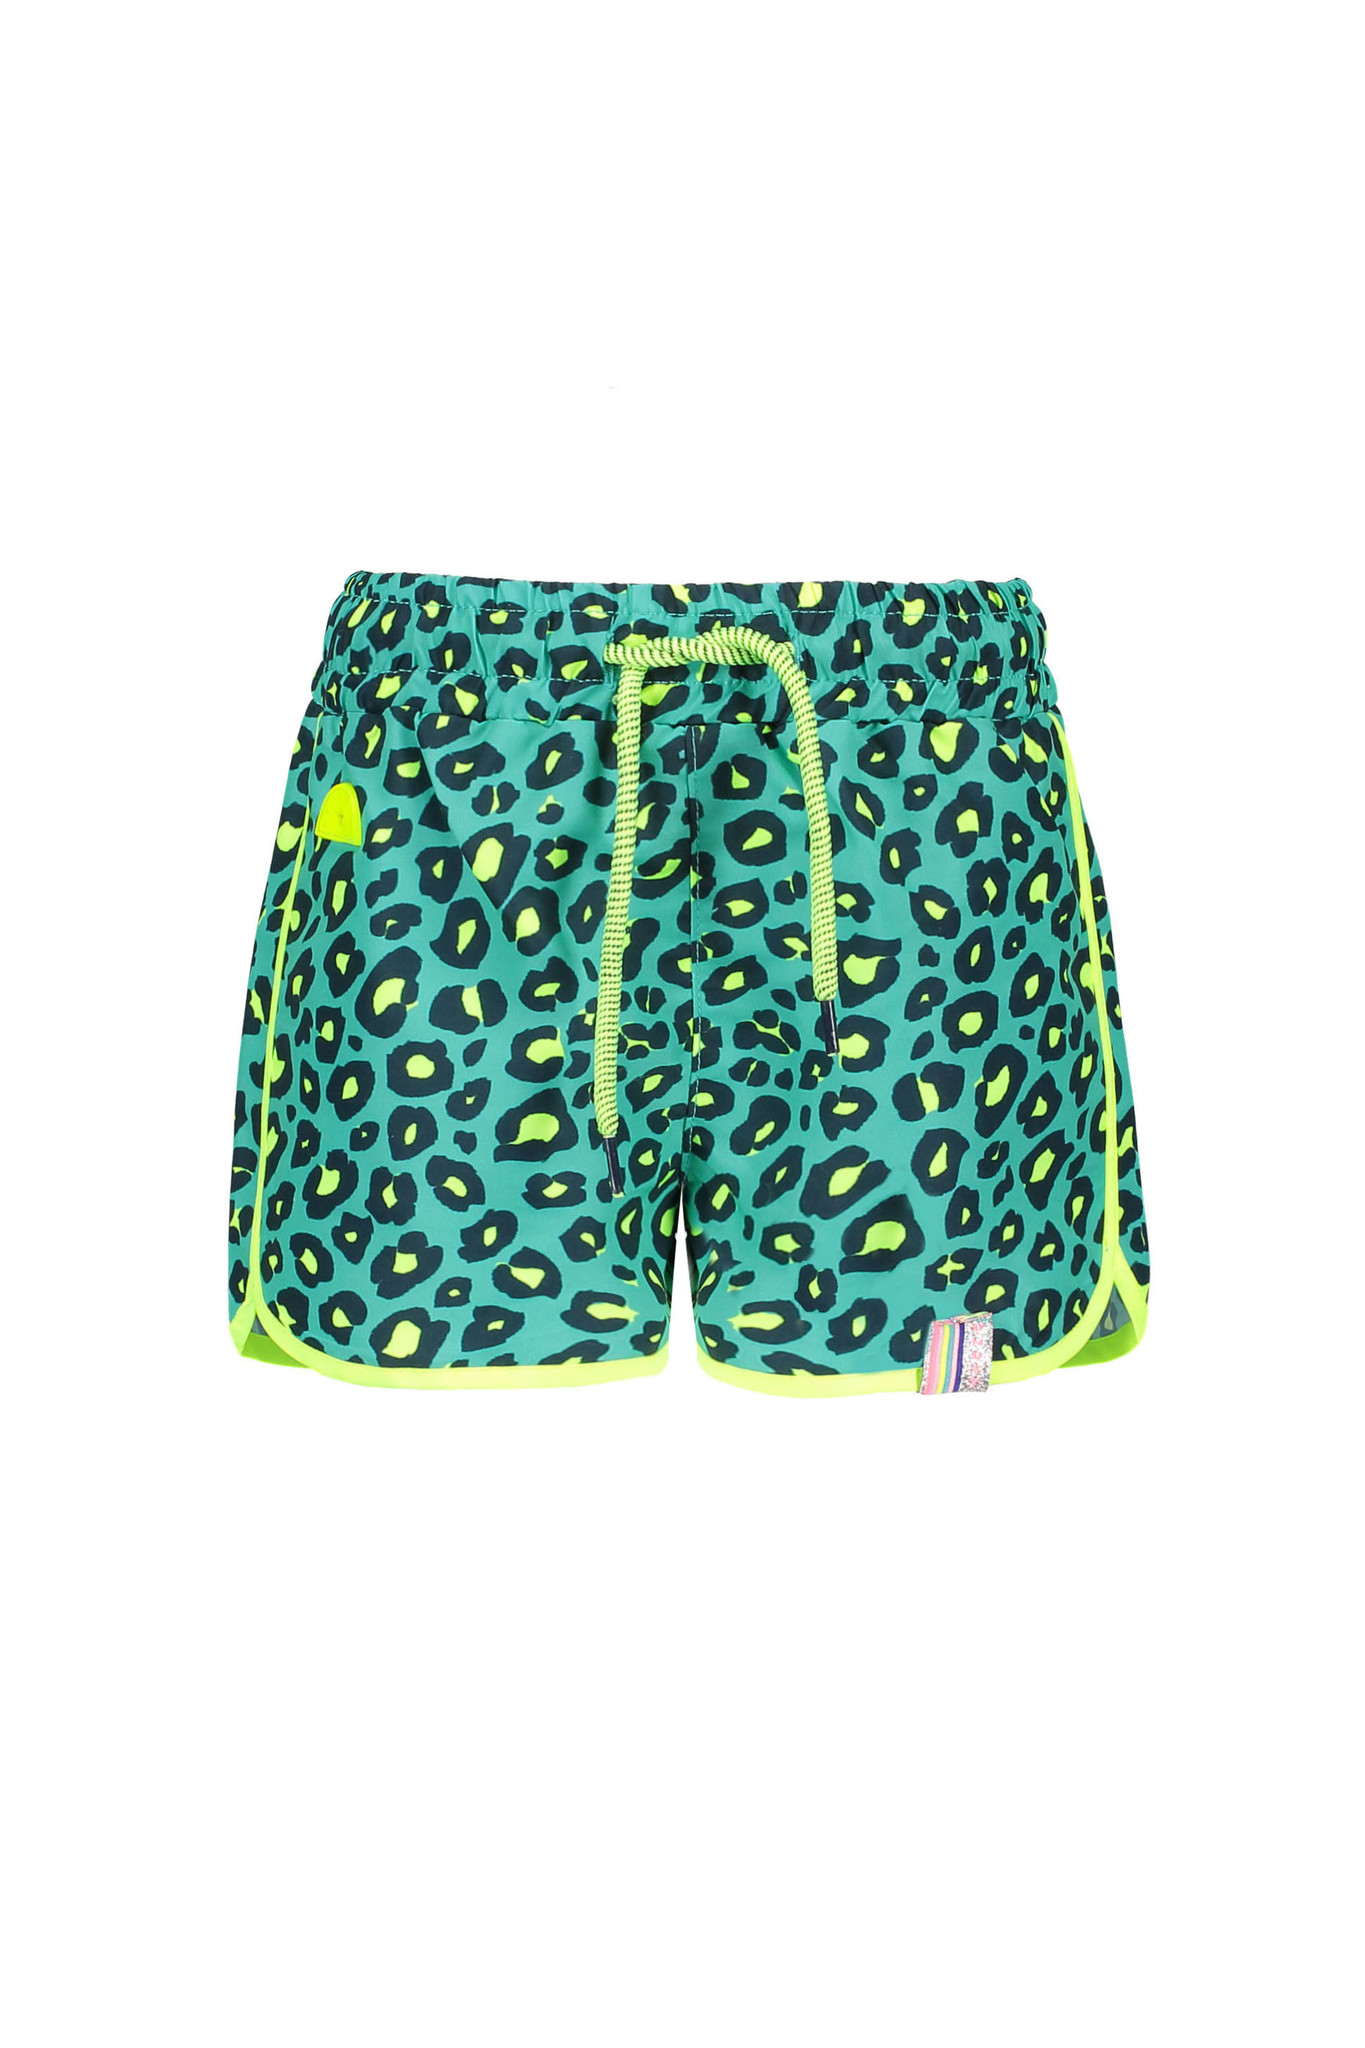 B.Nosy B.Nosy short woven beach hot turquoise panther ao midnight electric yellow